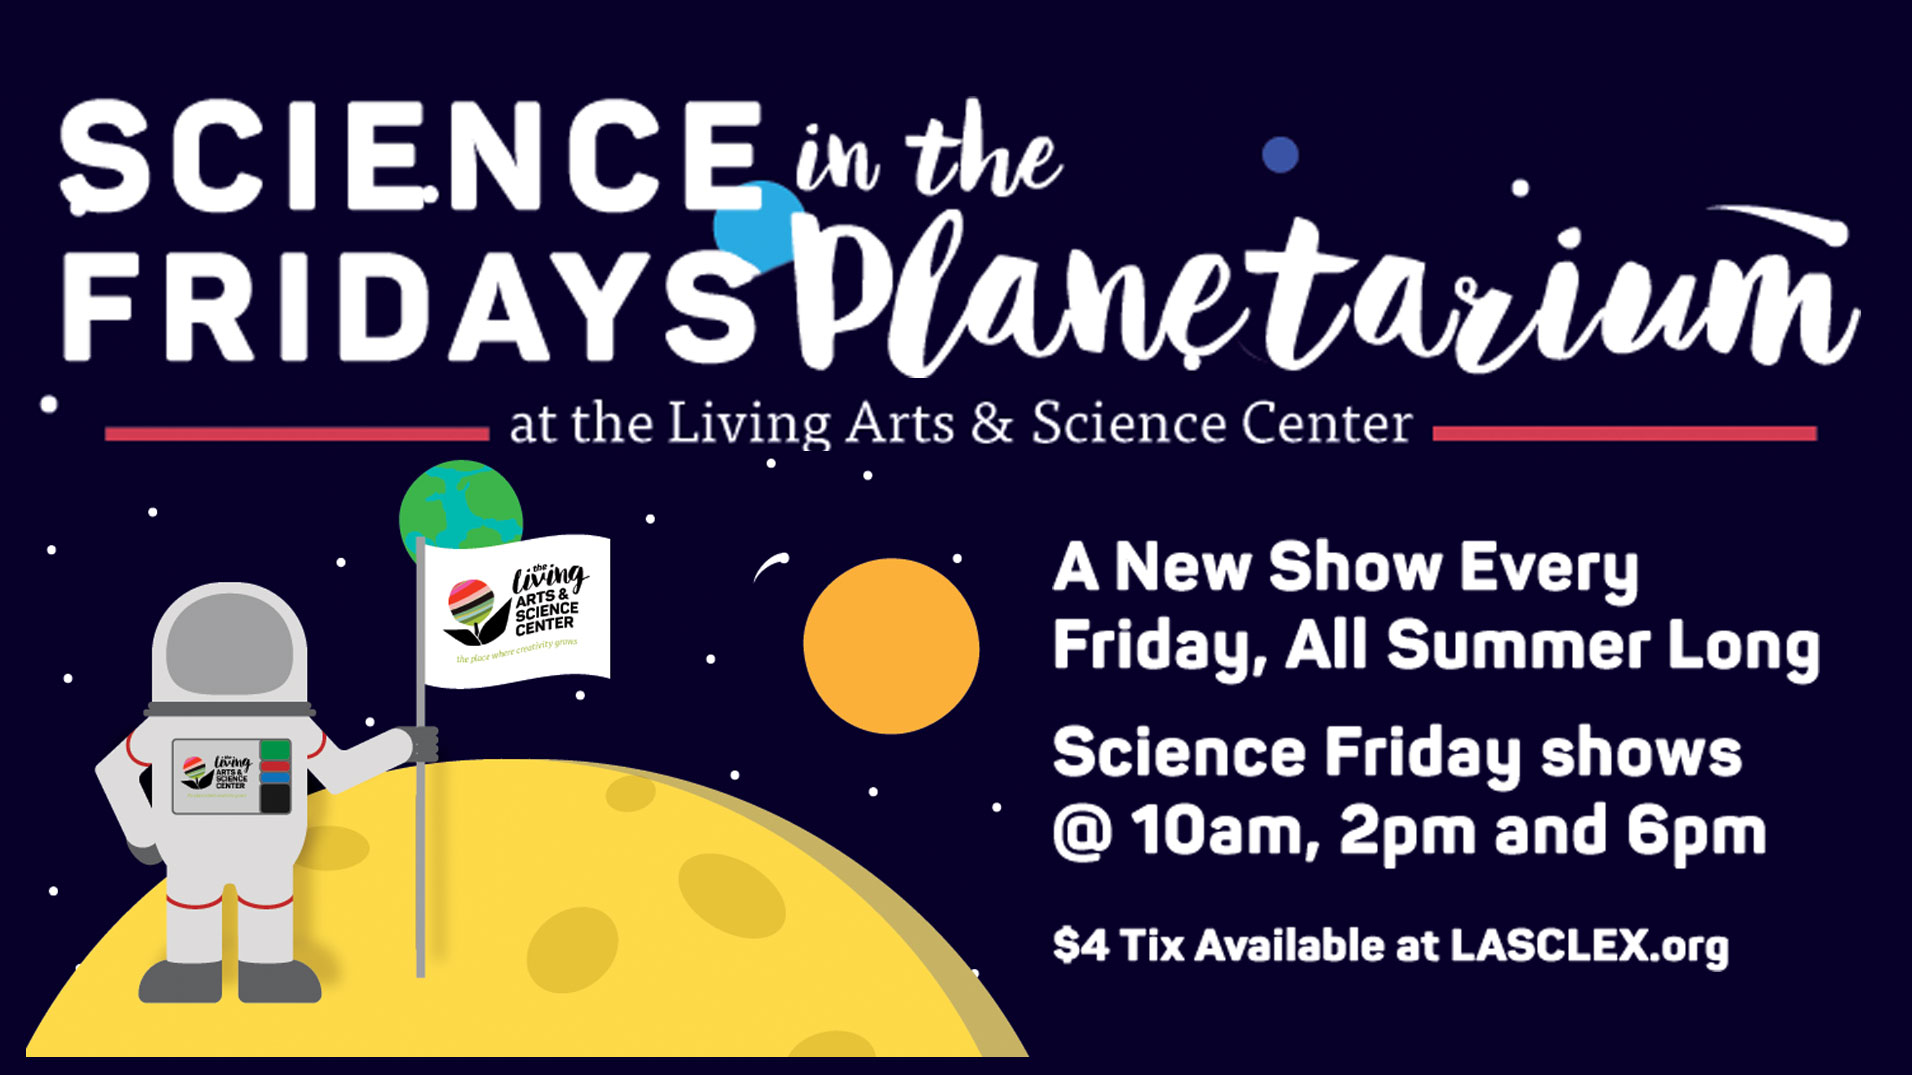 Science Fridays in the Planetarium